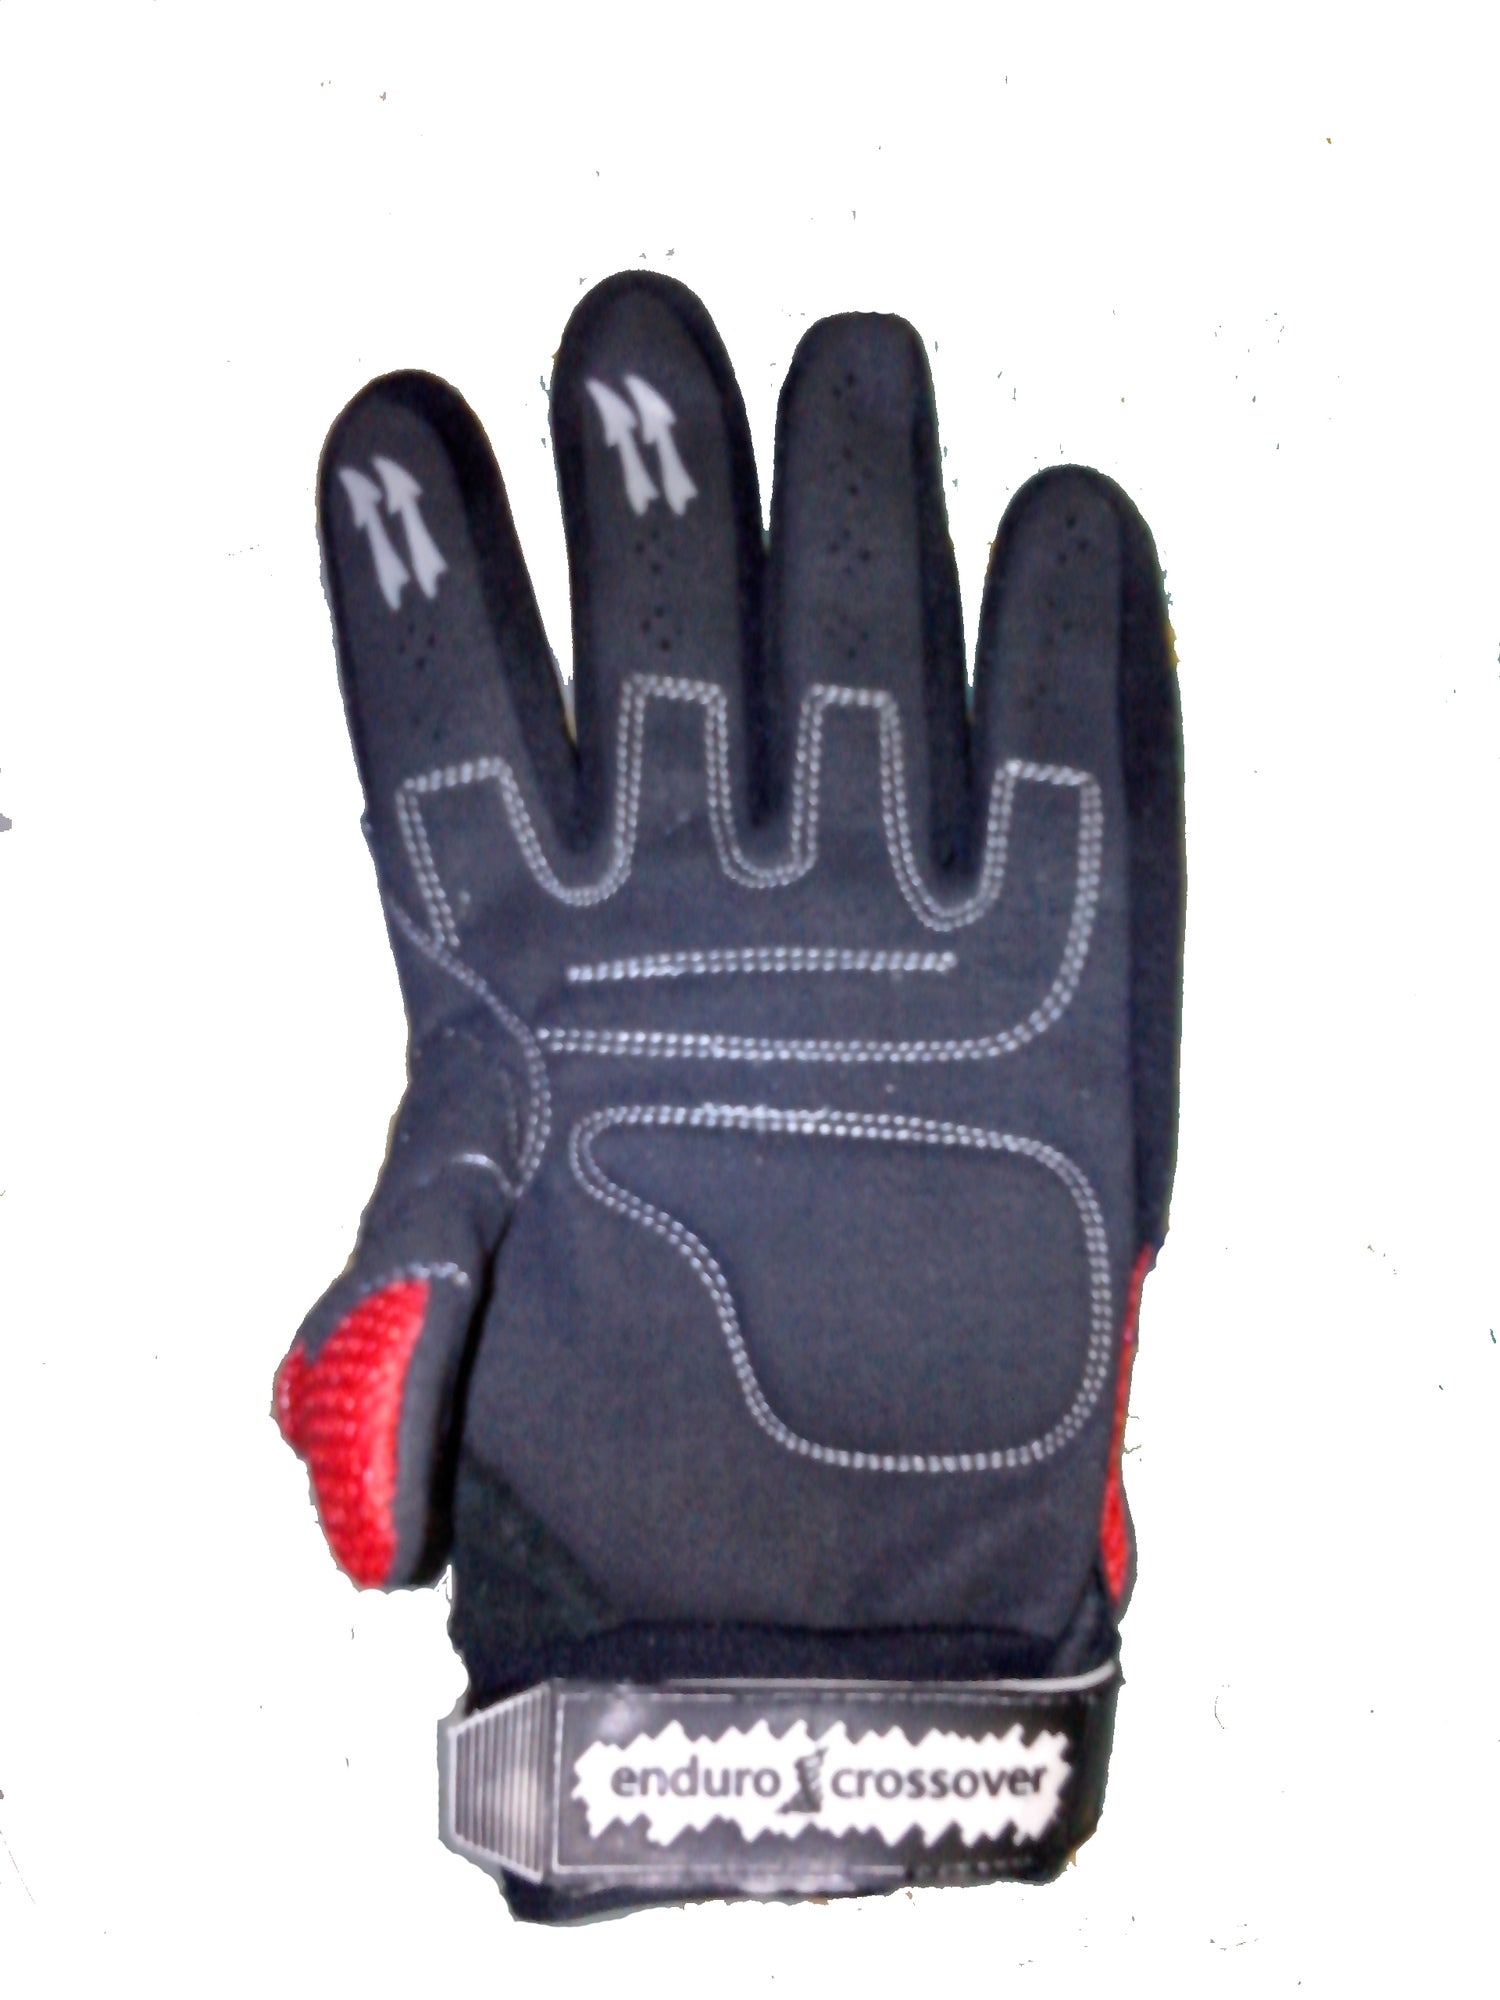 Image of Bright Red Enduro Crossover Gloves